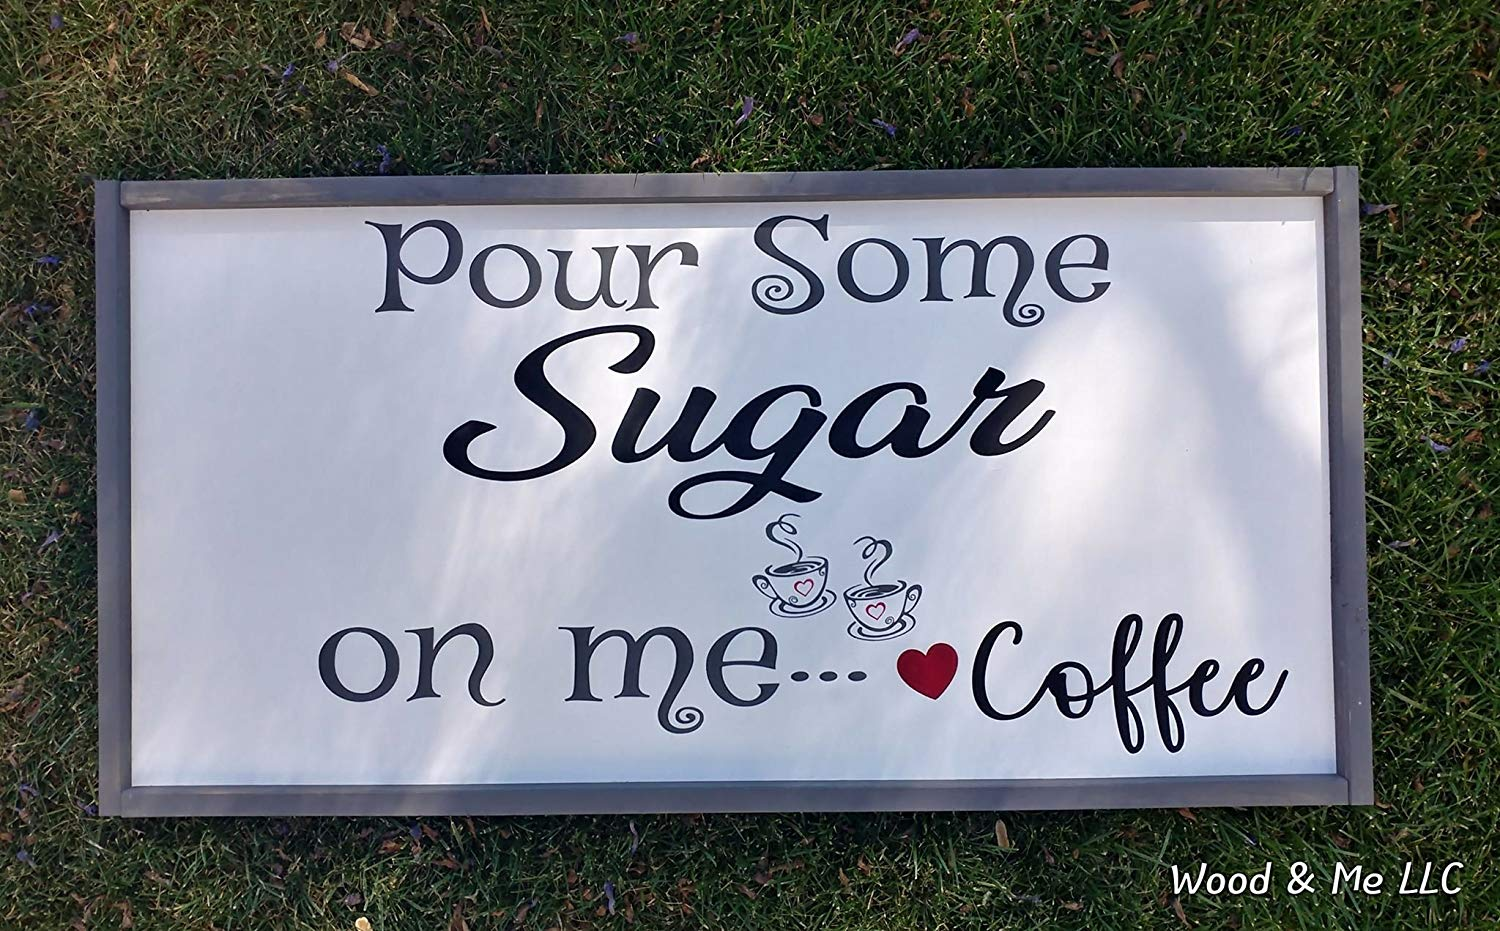 Coffee Bar Sign, Hand-Painted Wood Sign, Coffee, Kitchen Decor, Wall Art, Farmhouse, Shabby Chic, Rustic Sign, Vintage Decor, Housewarming Gift, Humorous Sign, Coffee Lover Sign